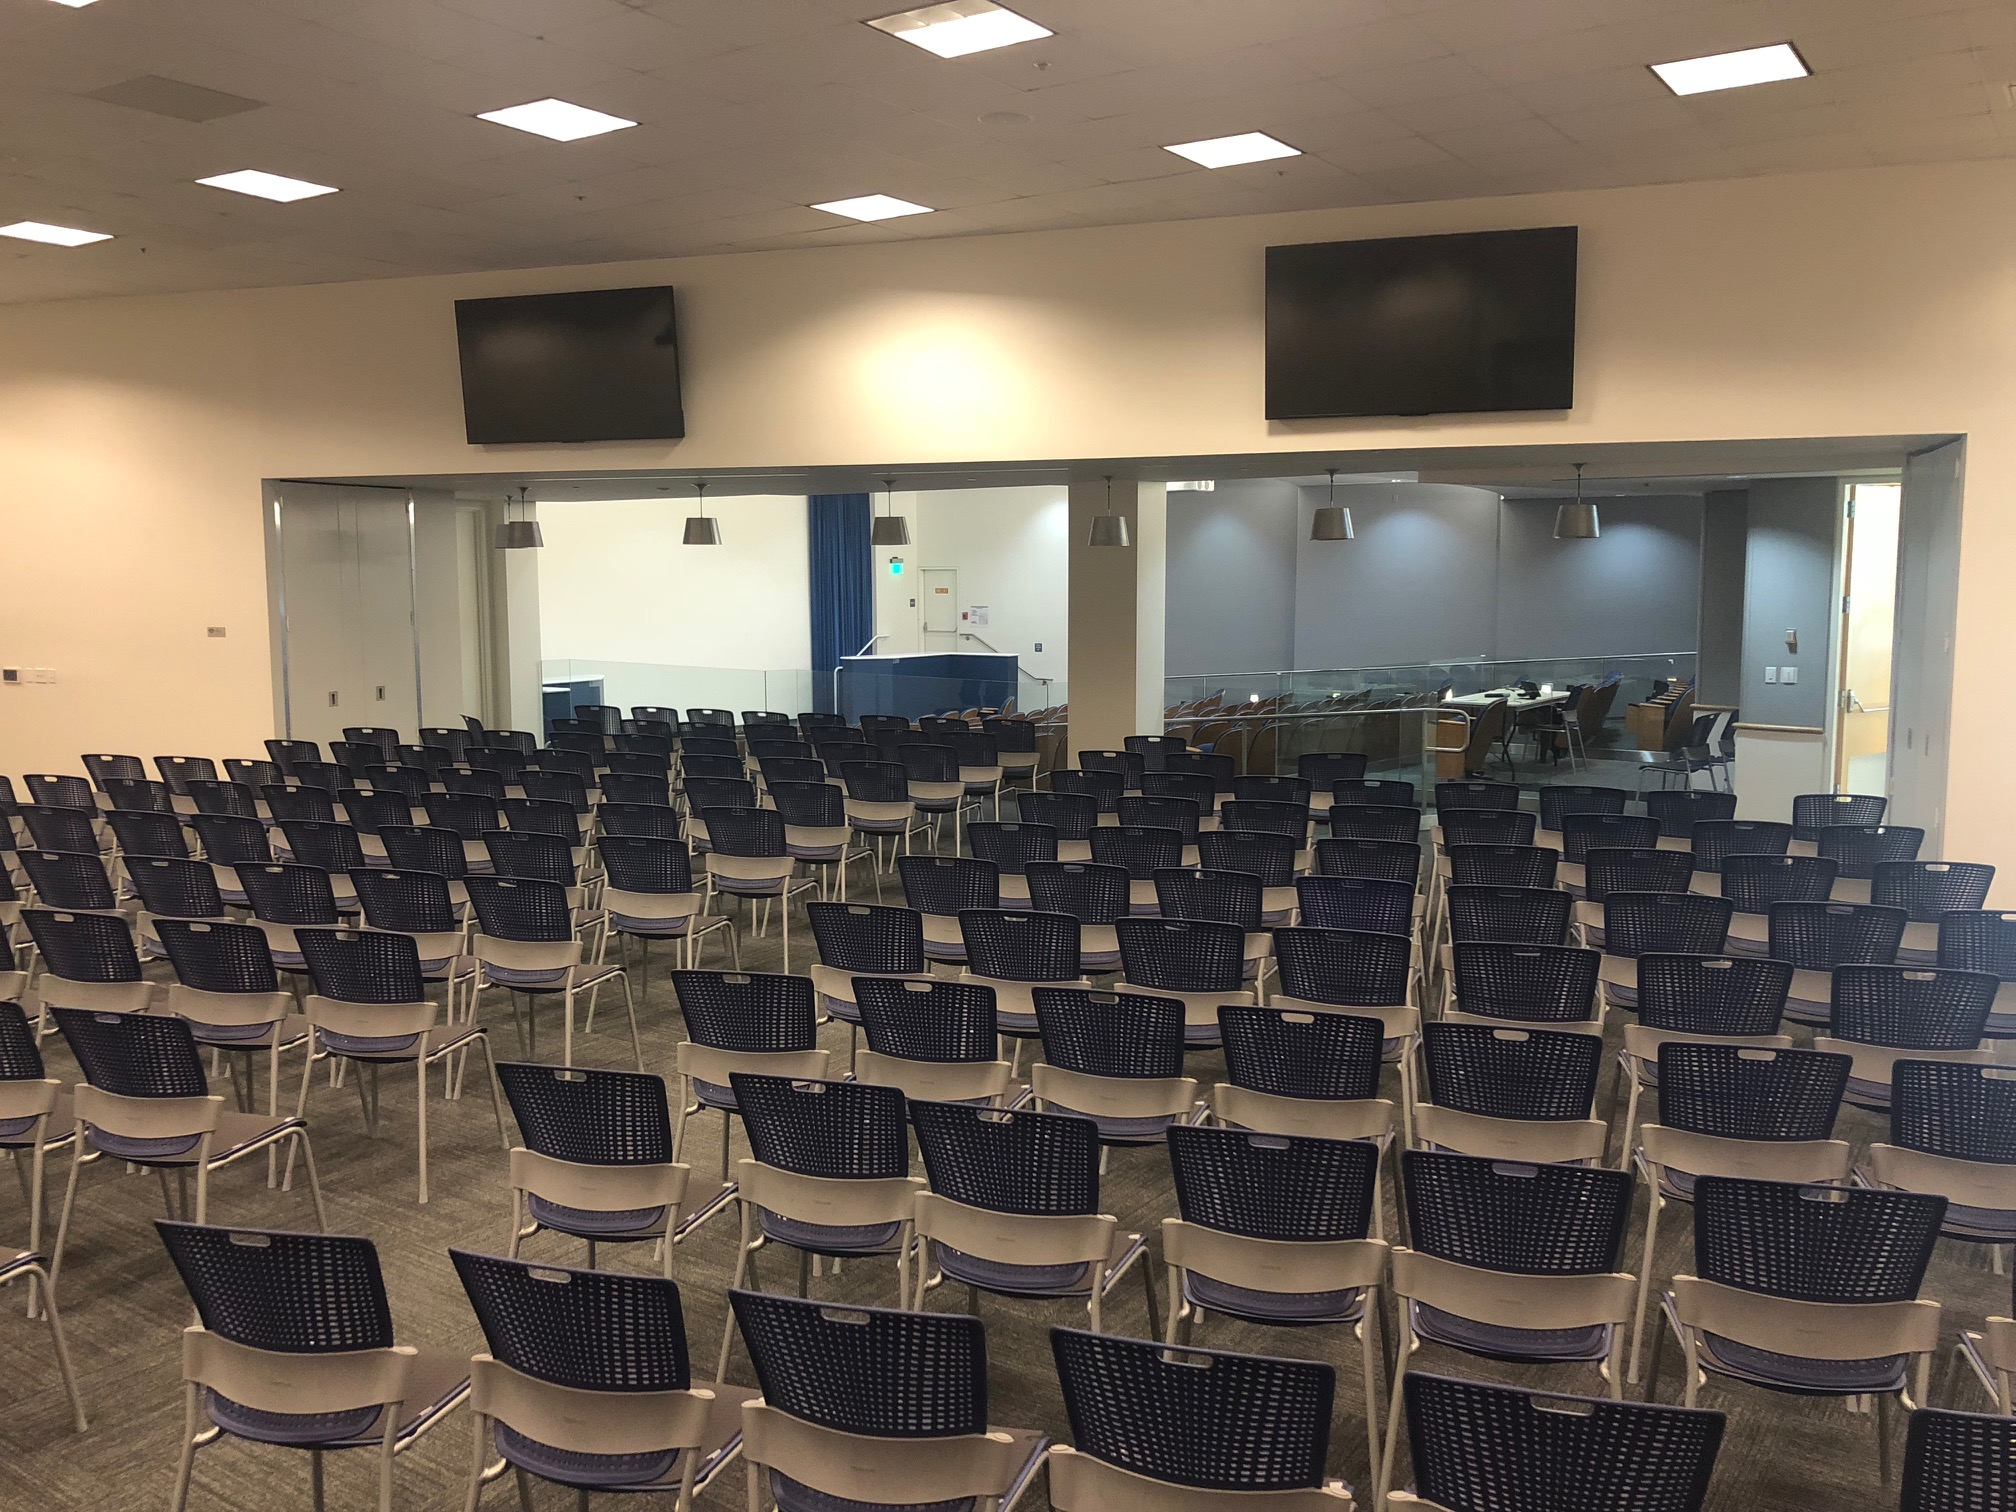 Tassajara Room.Theater seating for up to 225 people. Option shown: seating oriented toward Auditorium with air wall open.